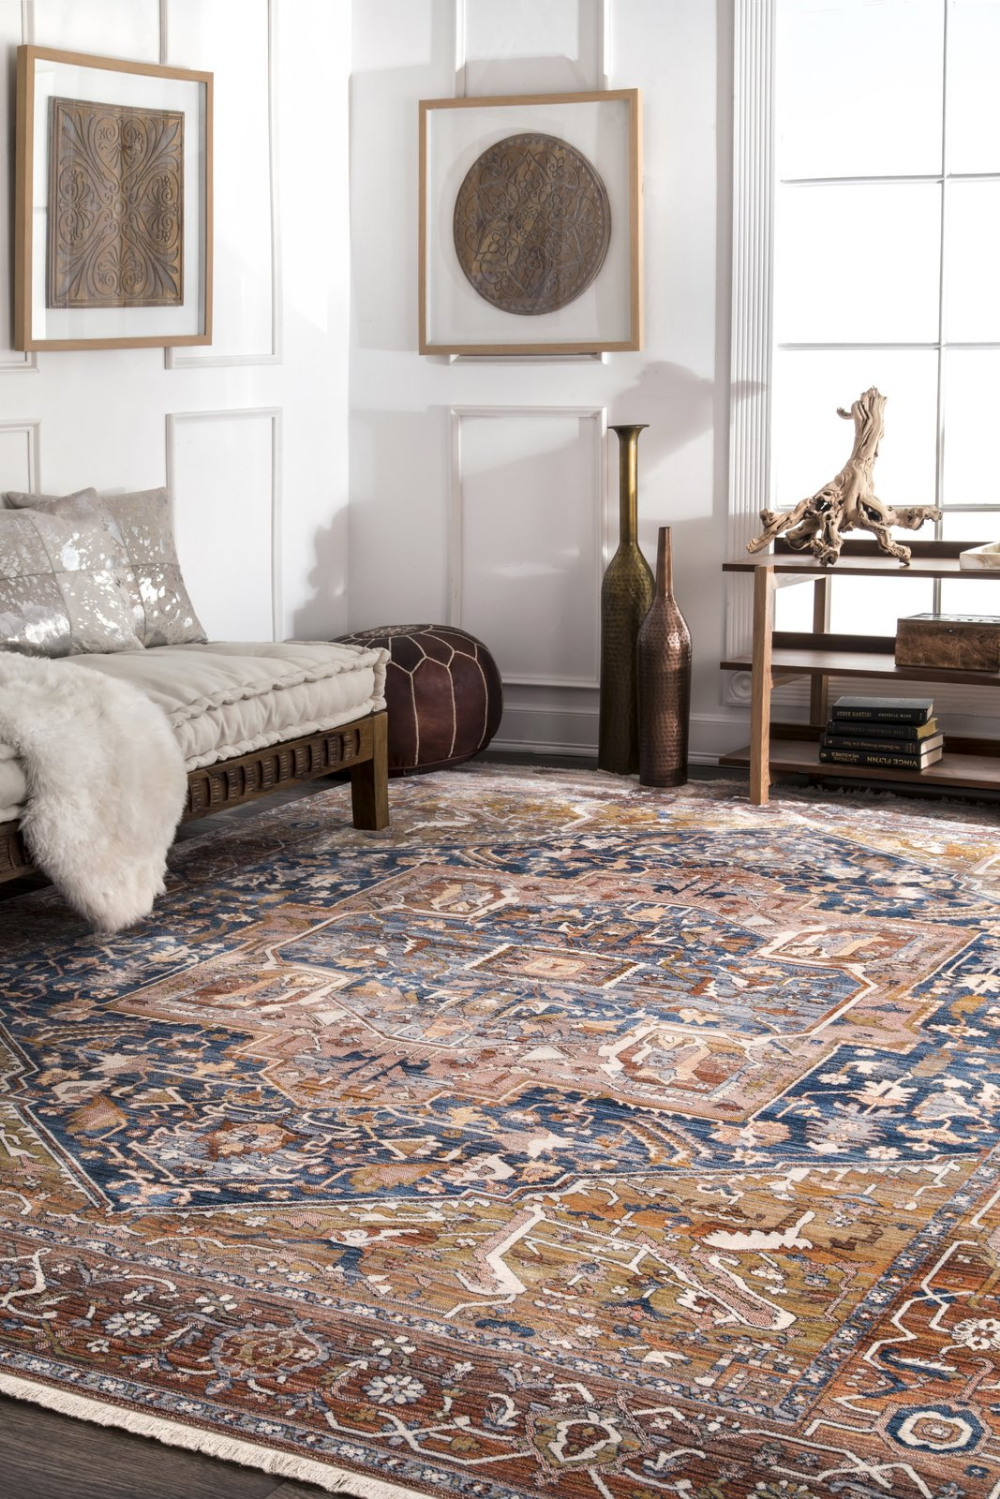 5 Best Places to Buy Affordable Rugs  Affordable rugs, Rugs usa